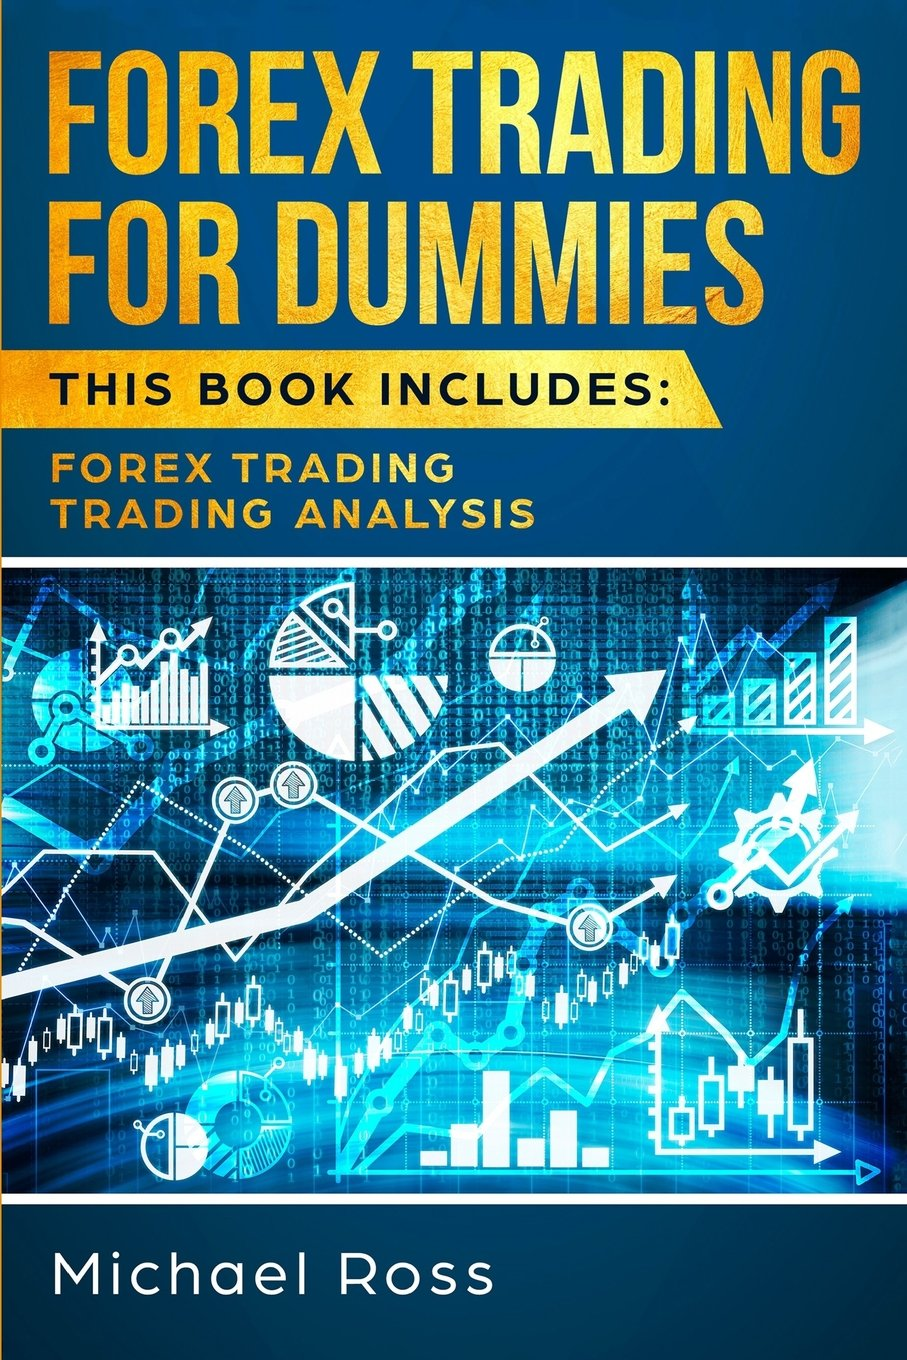 Free forex for dummies book documenting and review process with live trades